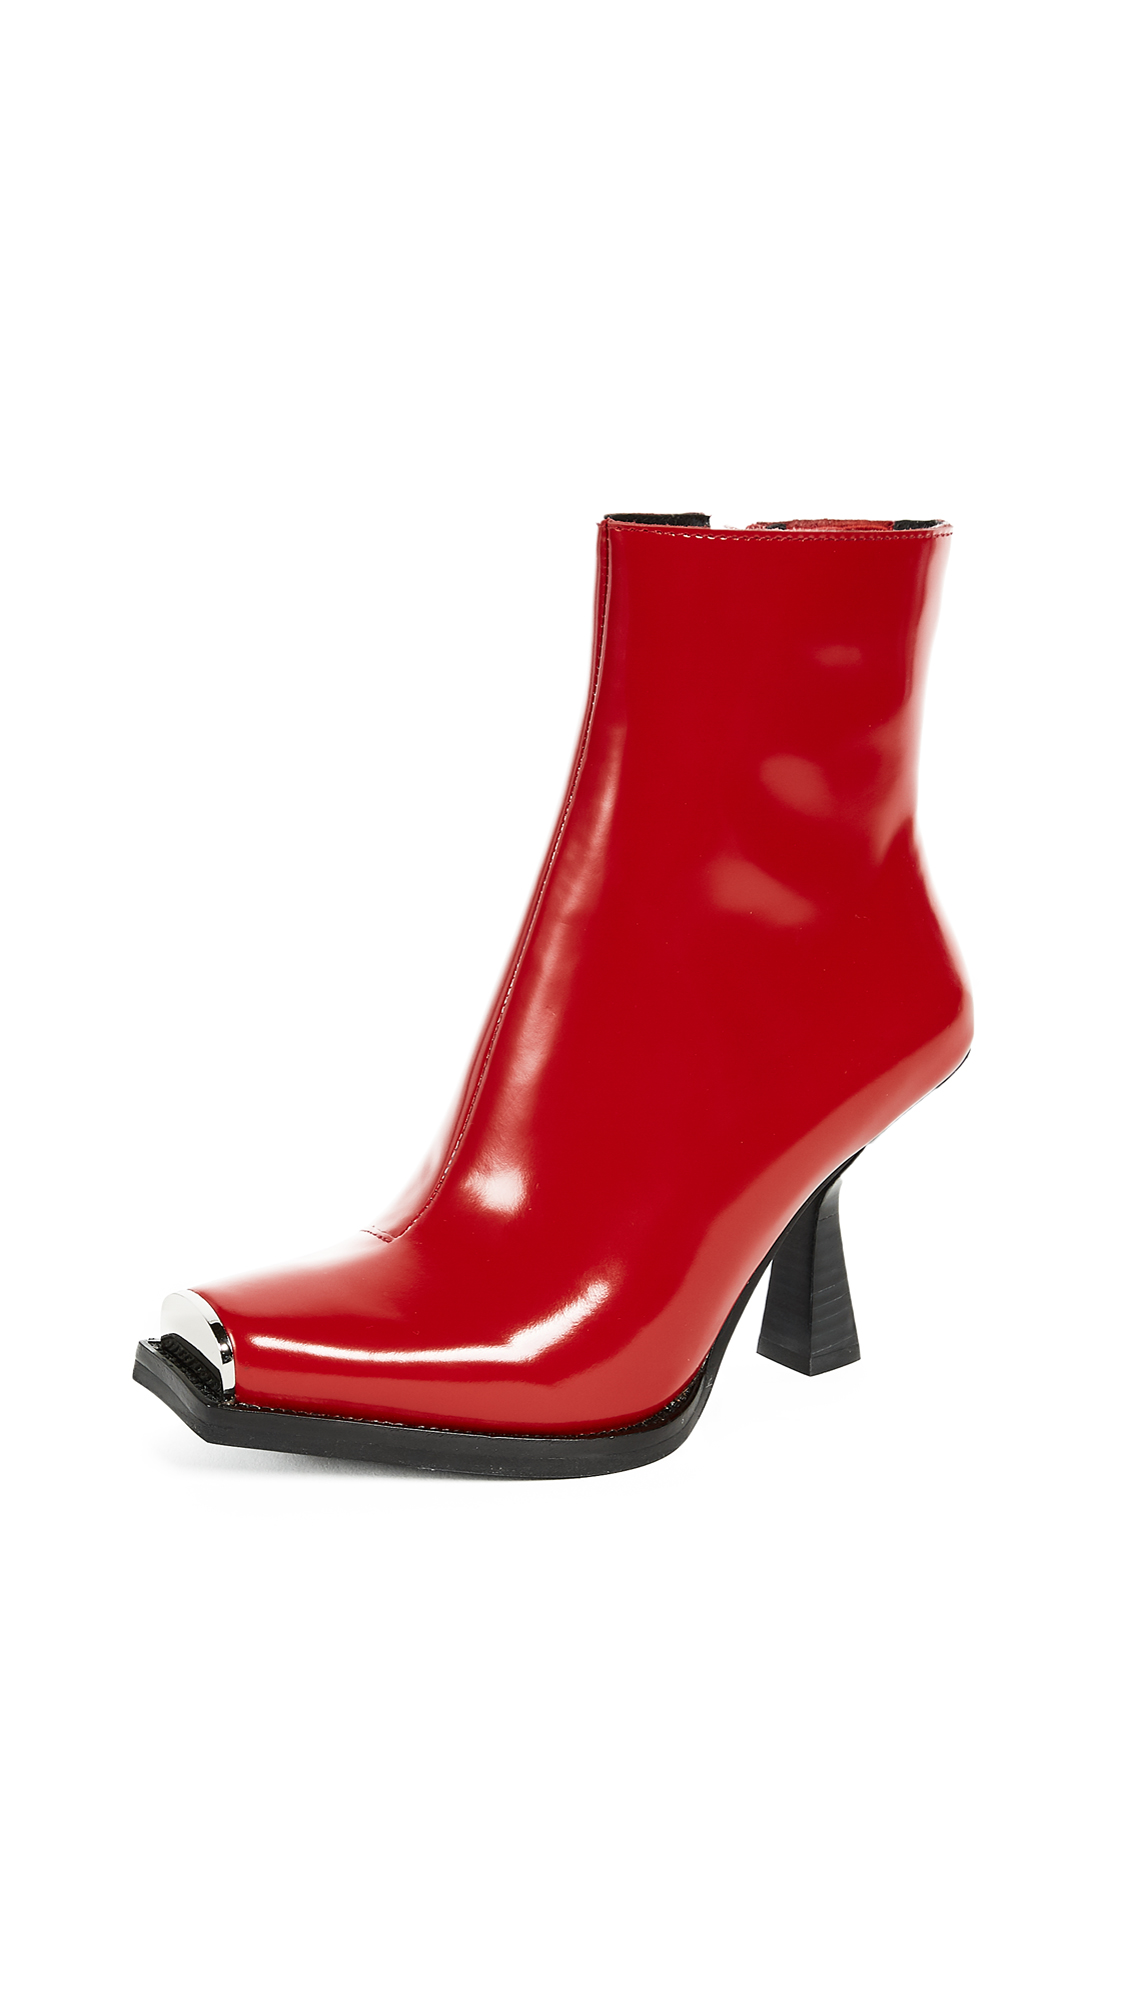 Jeffrey Campbell Hiatus Square Toe Boots - Red Box